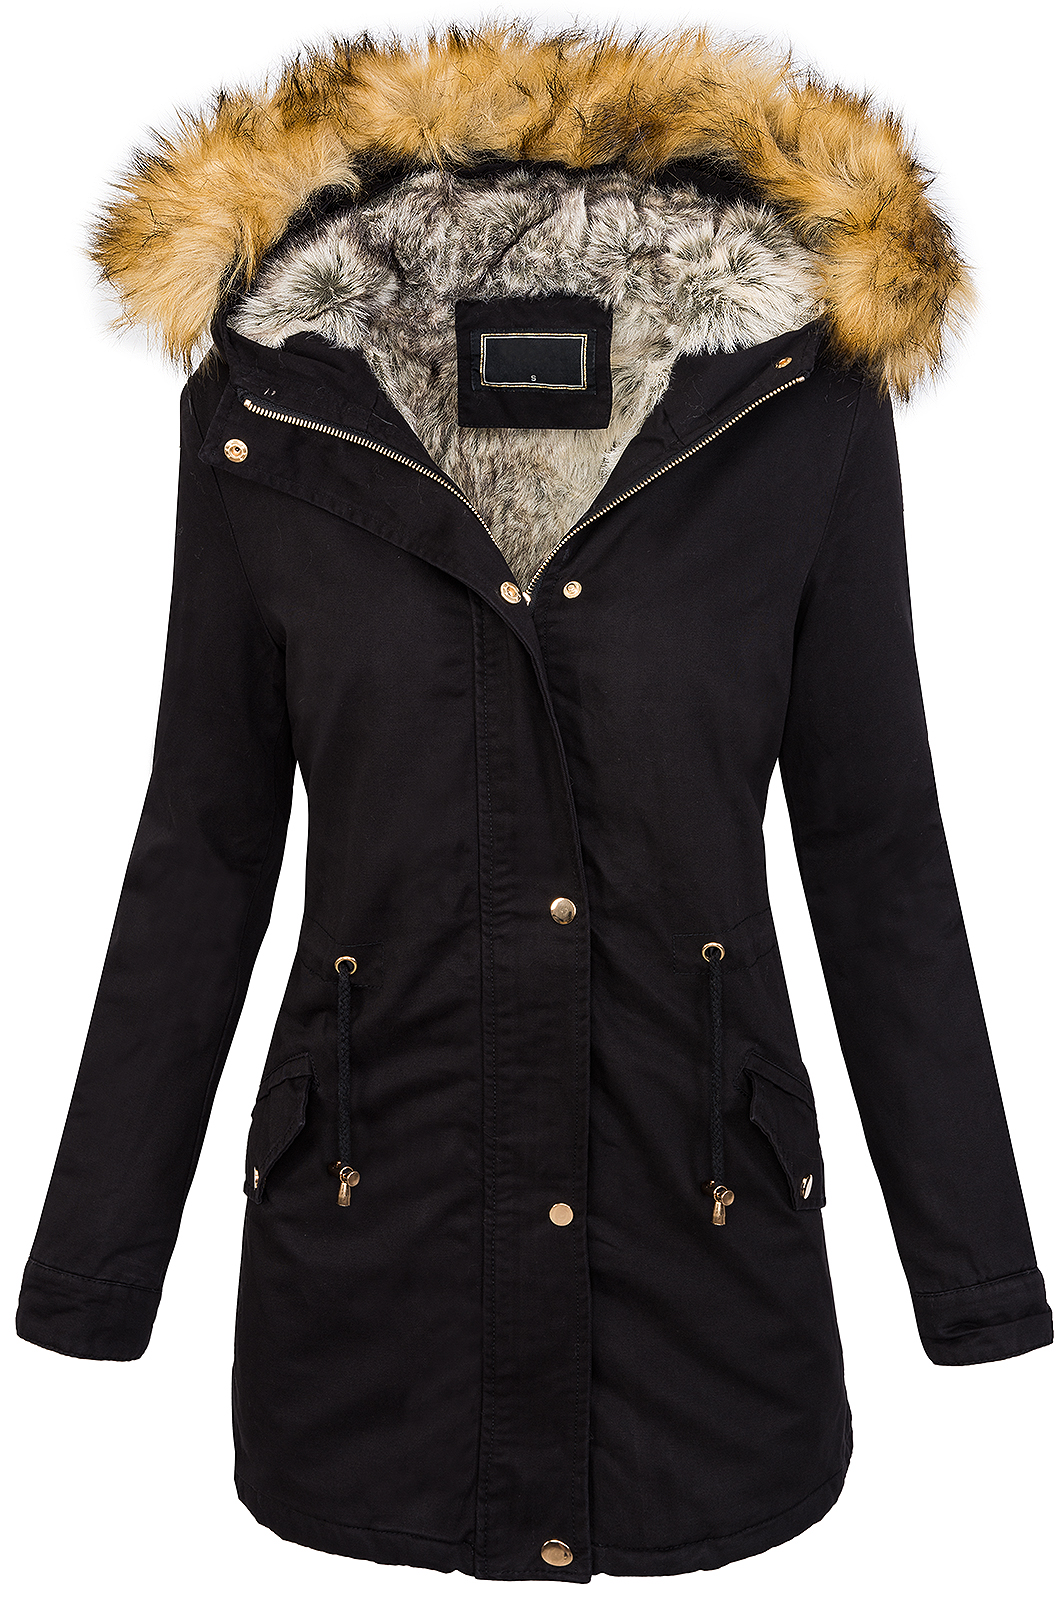 winter parka ladies jacket coat womens jacket hood faux fur warm d 208 ebay. Black Bedroom Furniture Sets. Home Design Ideas